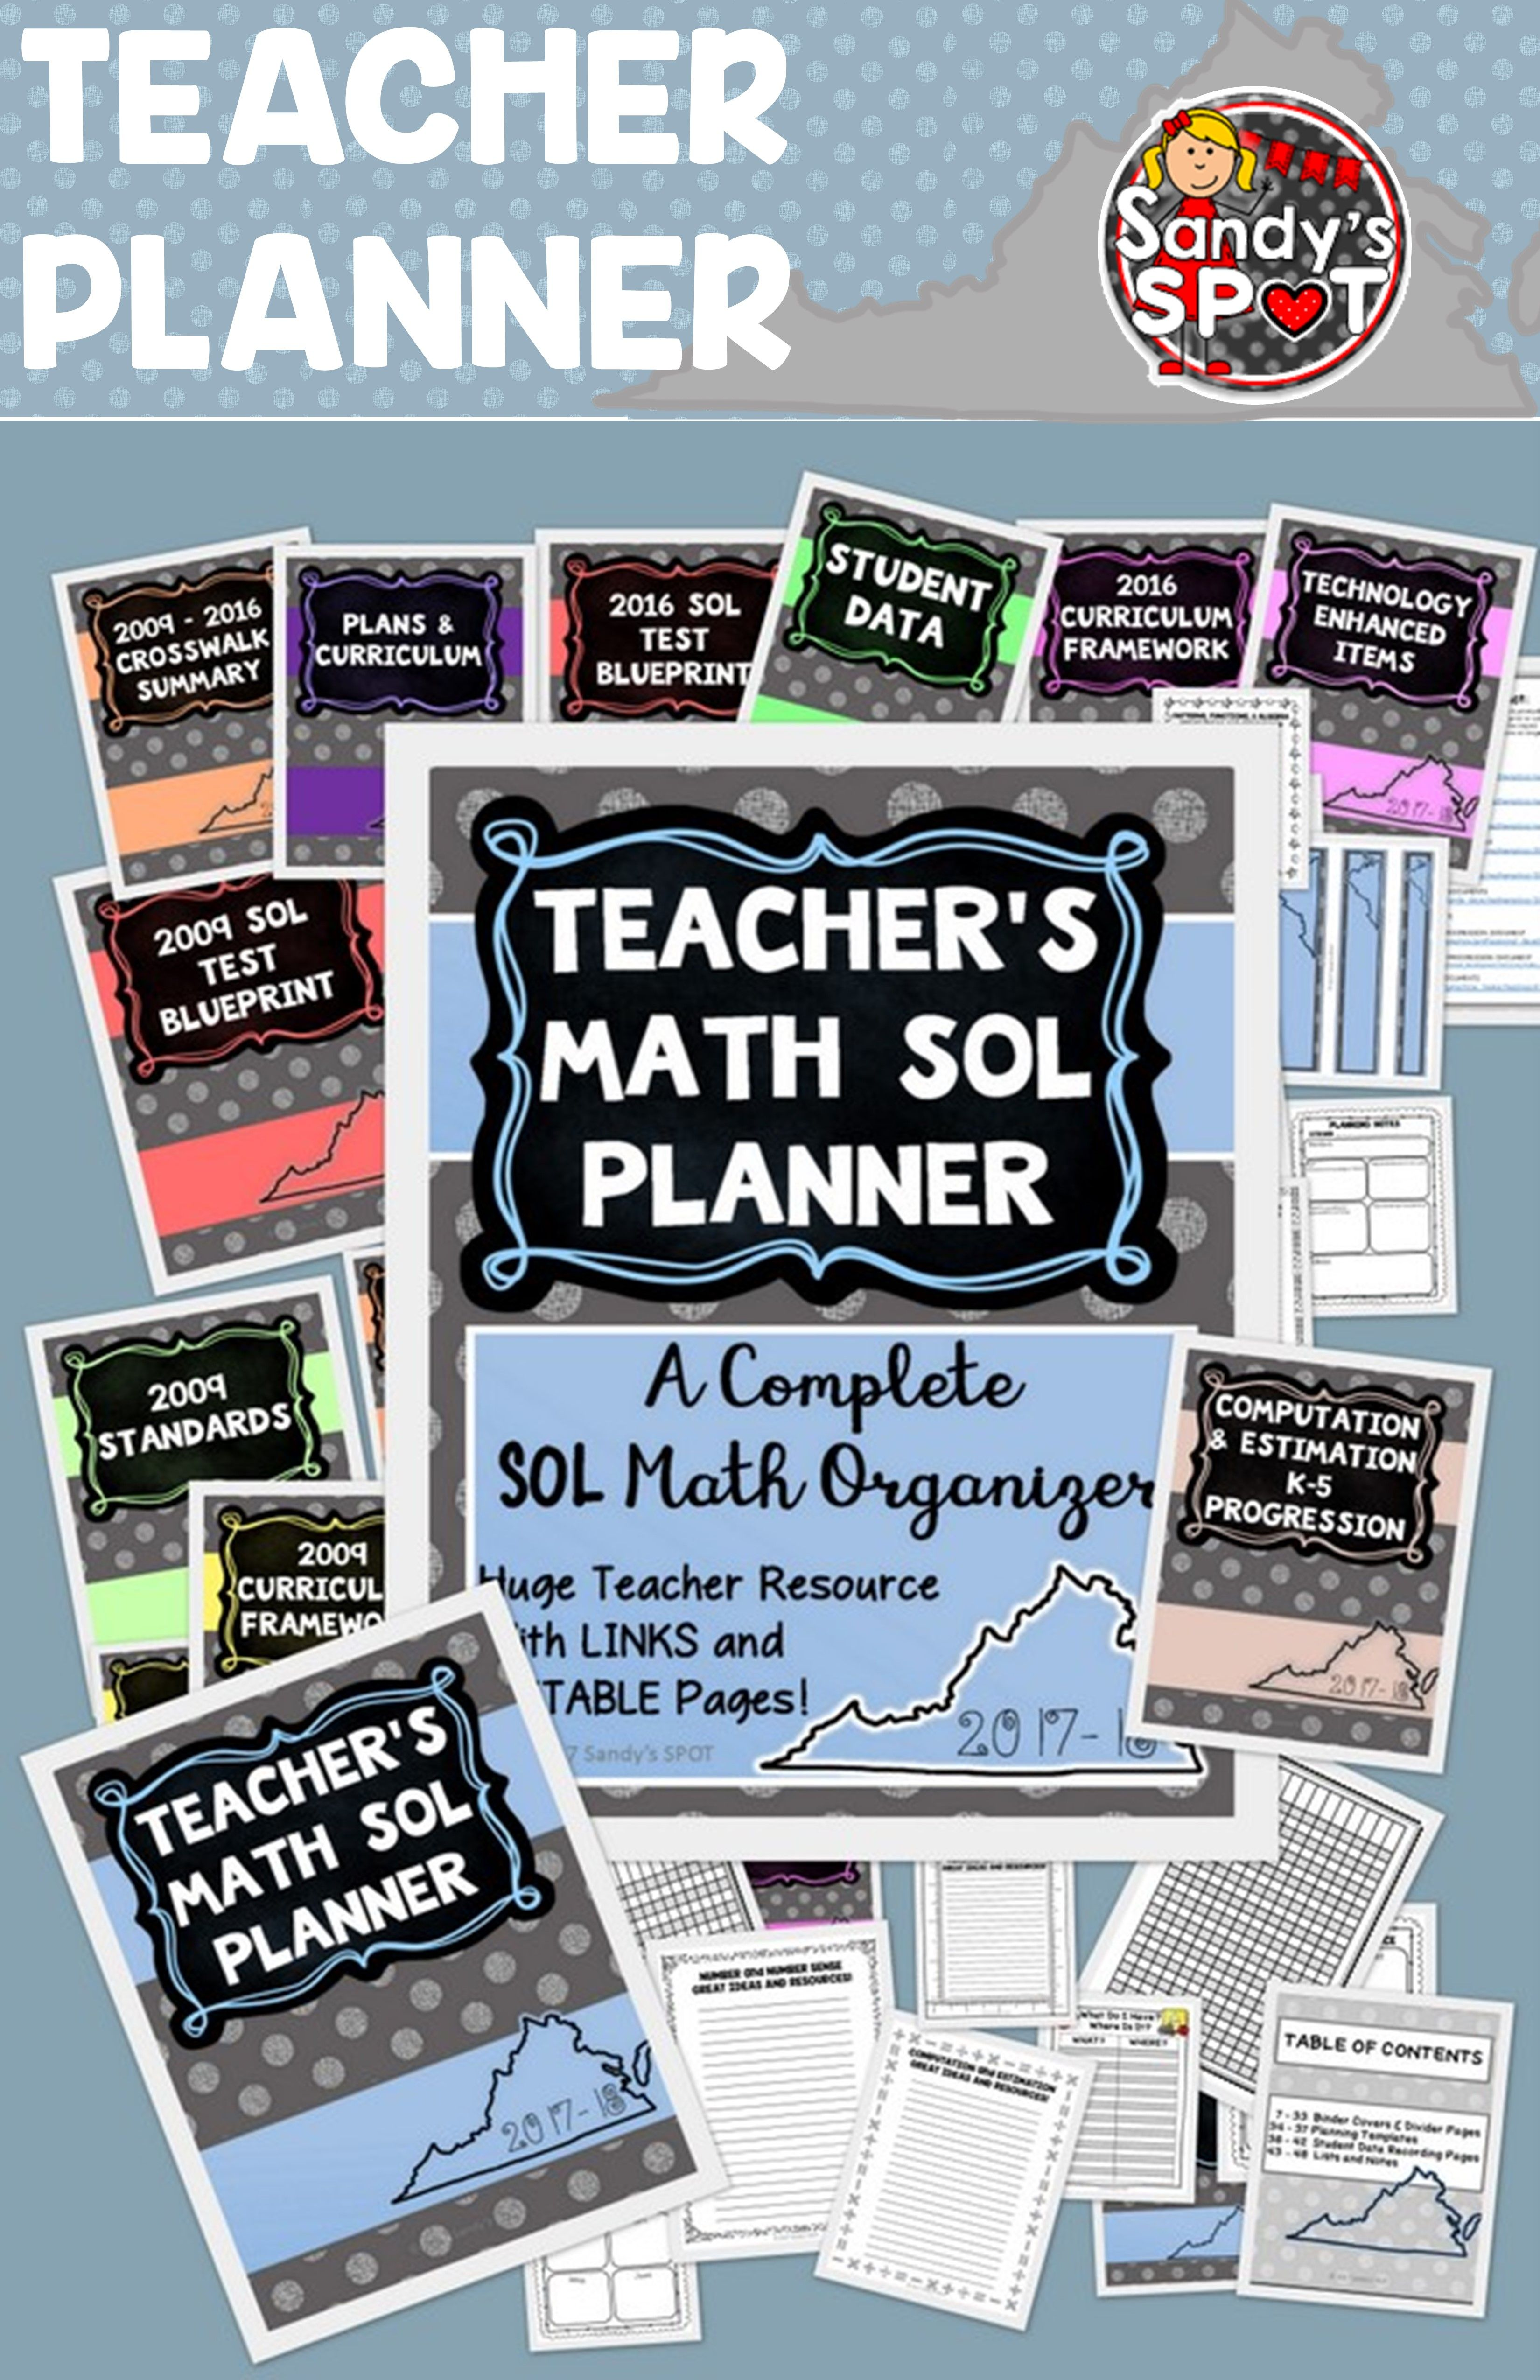 Virginia teacher planner sol math 2017 sandys spot pinterest if you teach math in virginia this teacher planner is a great tool for organizing and planning malvernweather Choice Image